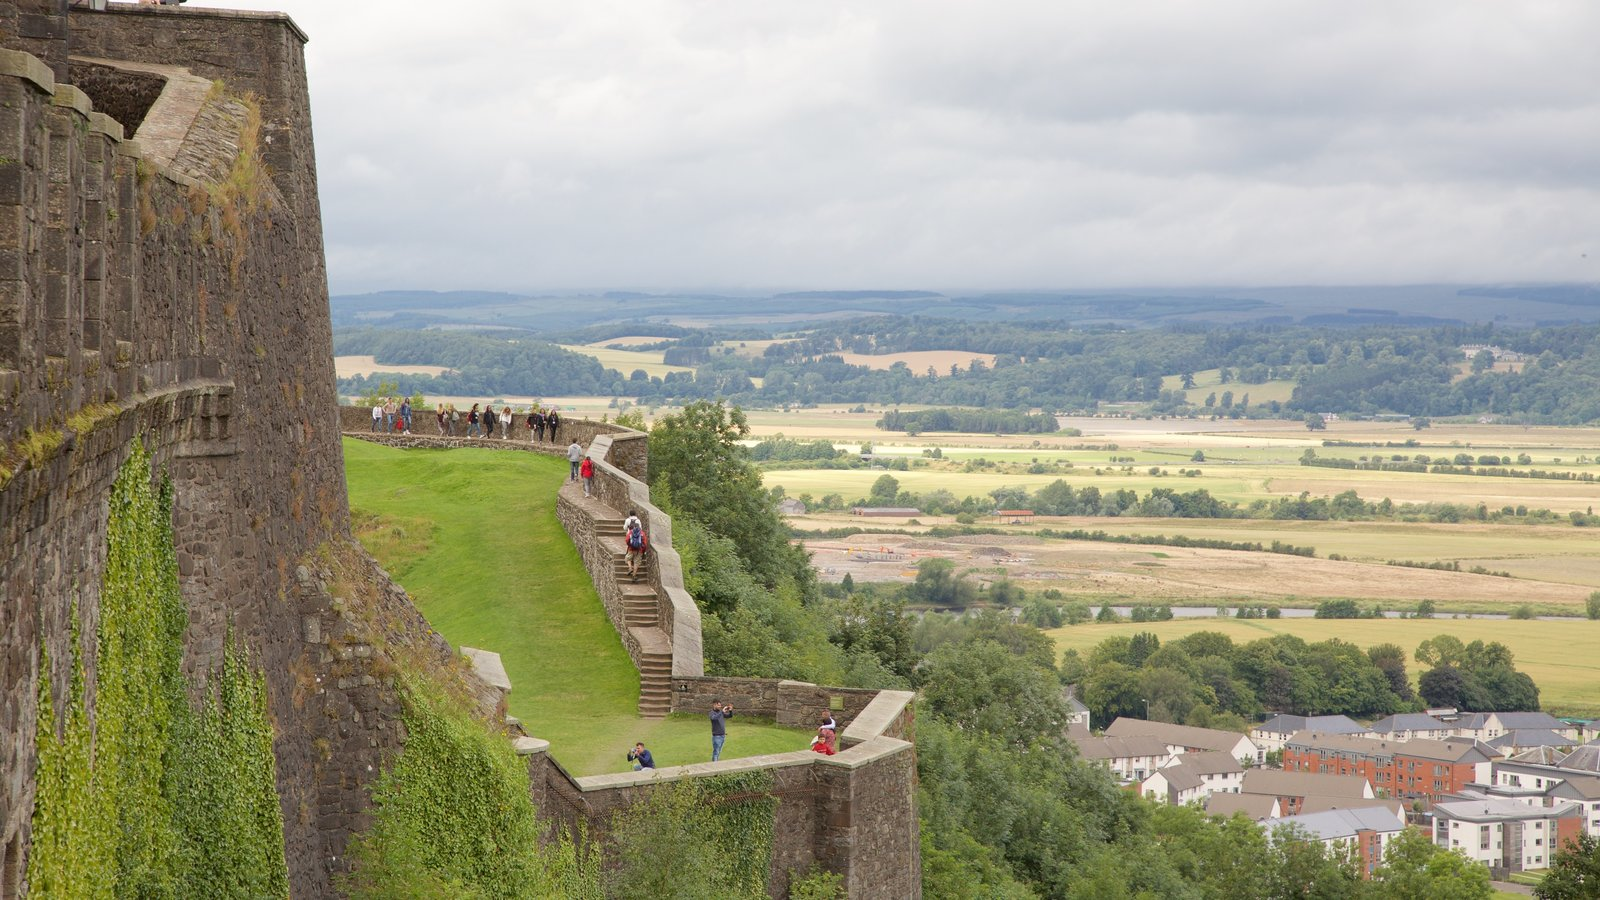 Stirling Castle which includes heritage elements and château or palace